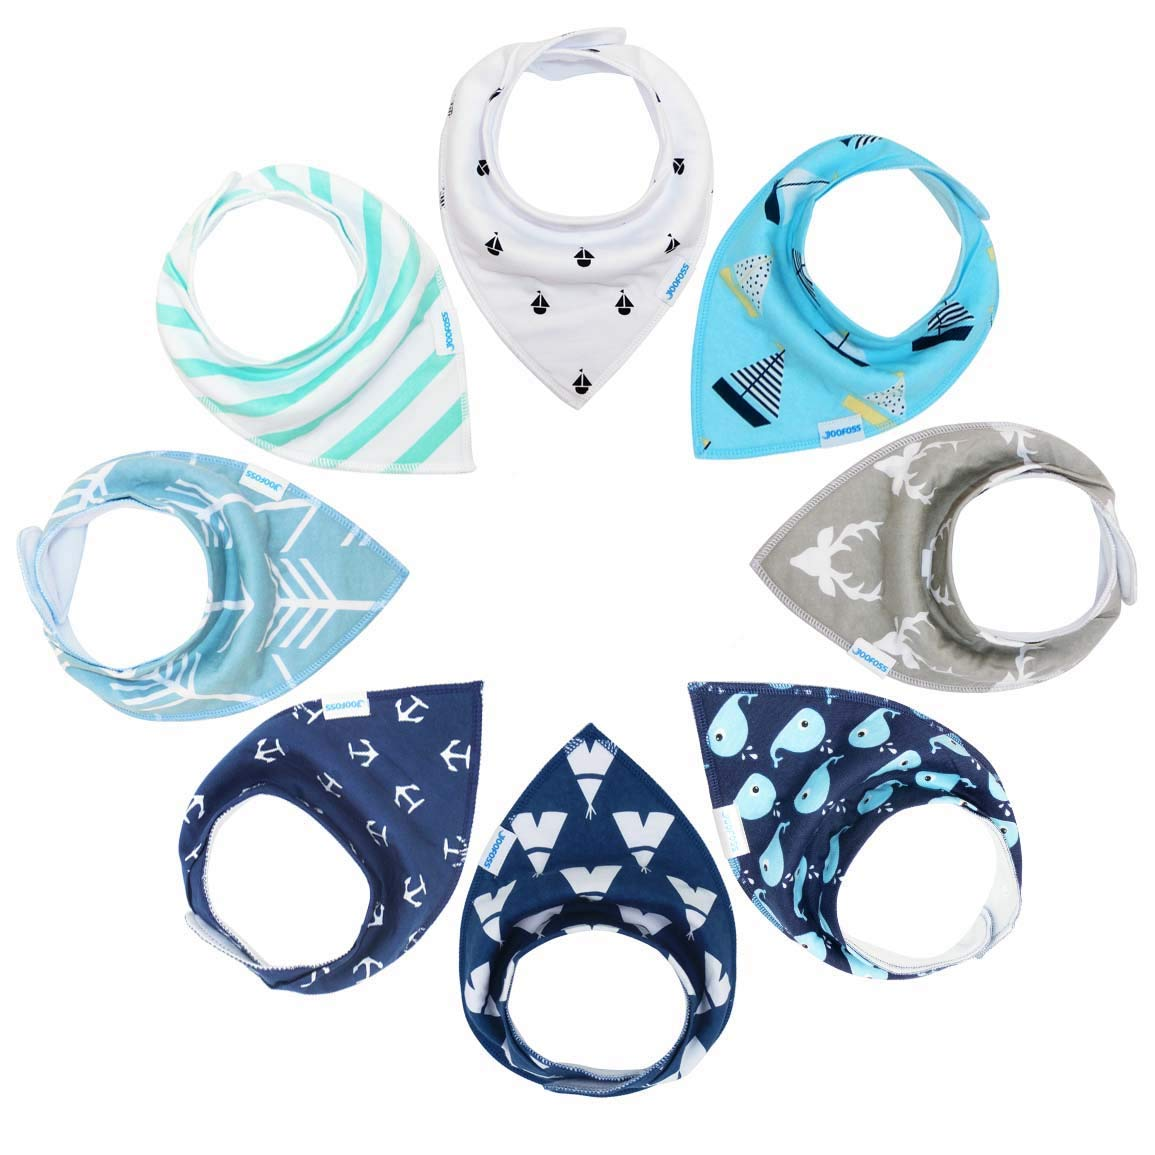 Baby Bandana Drool Bibs 8 Pack Set for Teething and Drooling Extra Absorbent 100% Organic Cotton Perfect shower gift by YOOFOSS